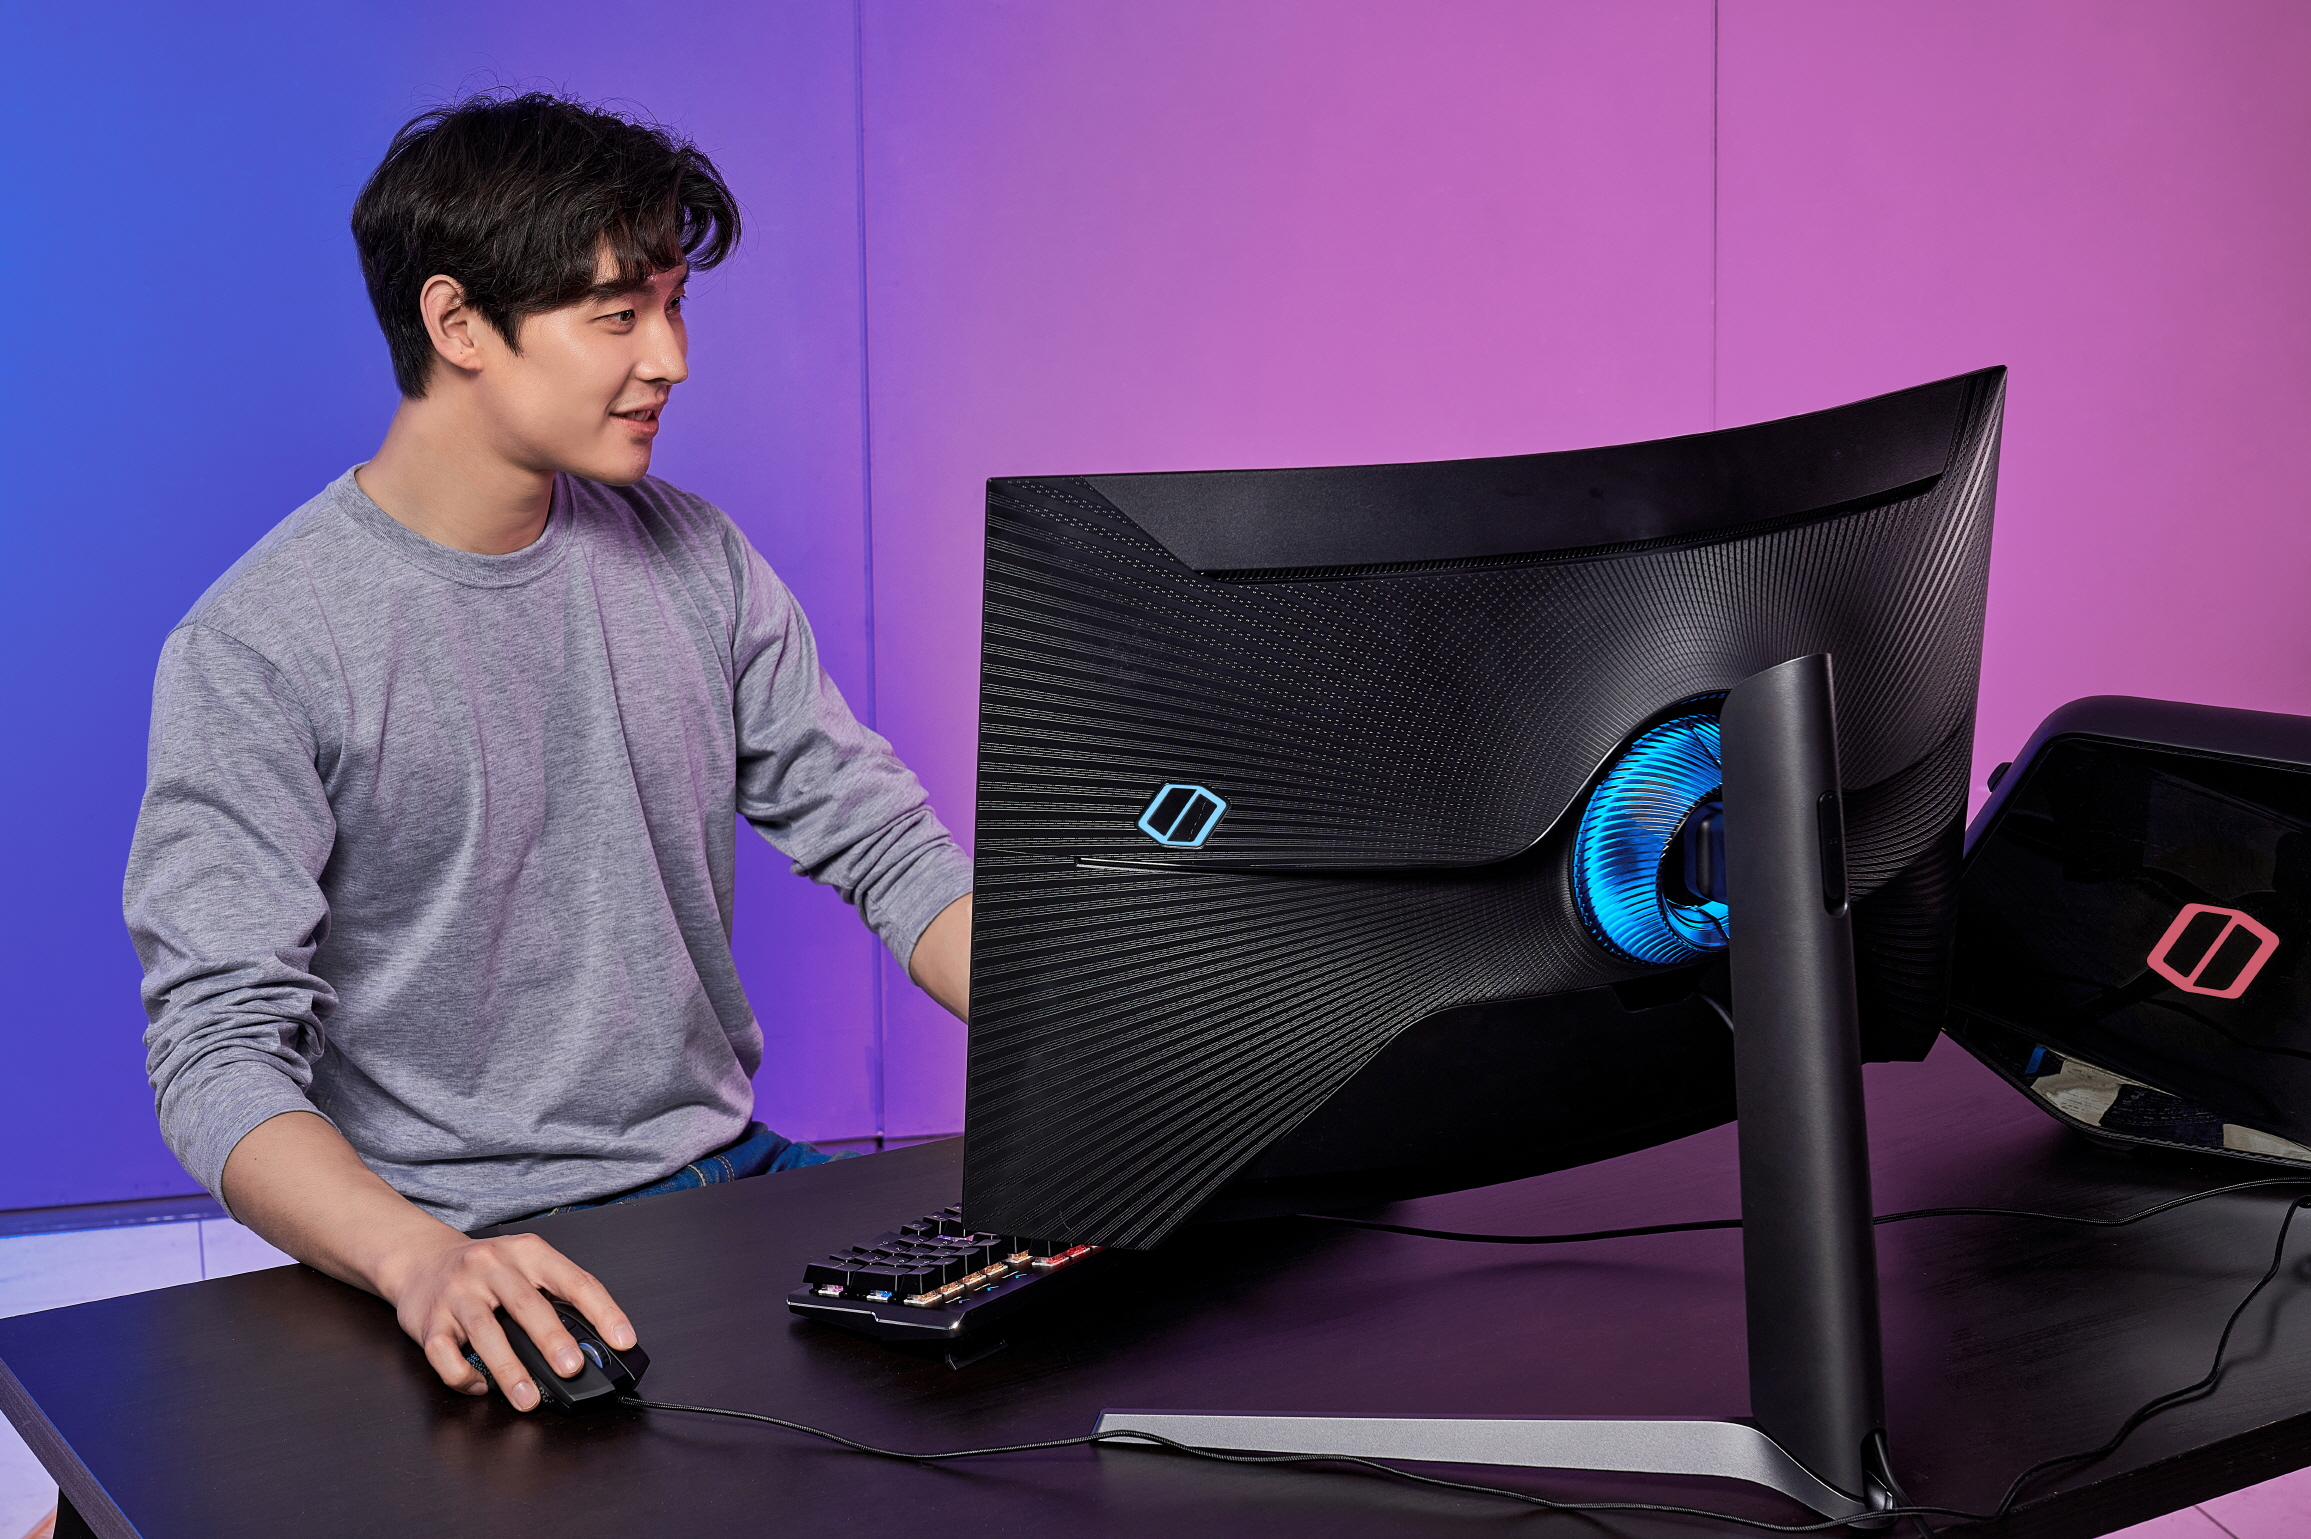 Odyssey G7 dl5 Samsung Launch World First 1000R Curved Gaming Monitor